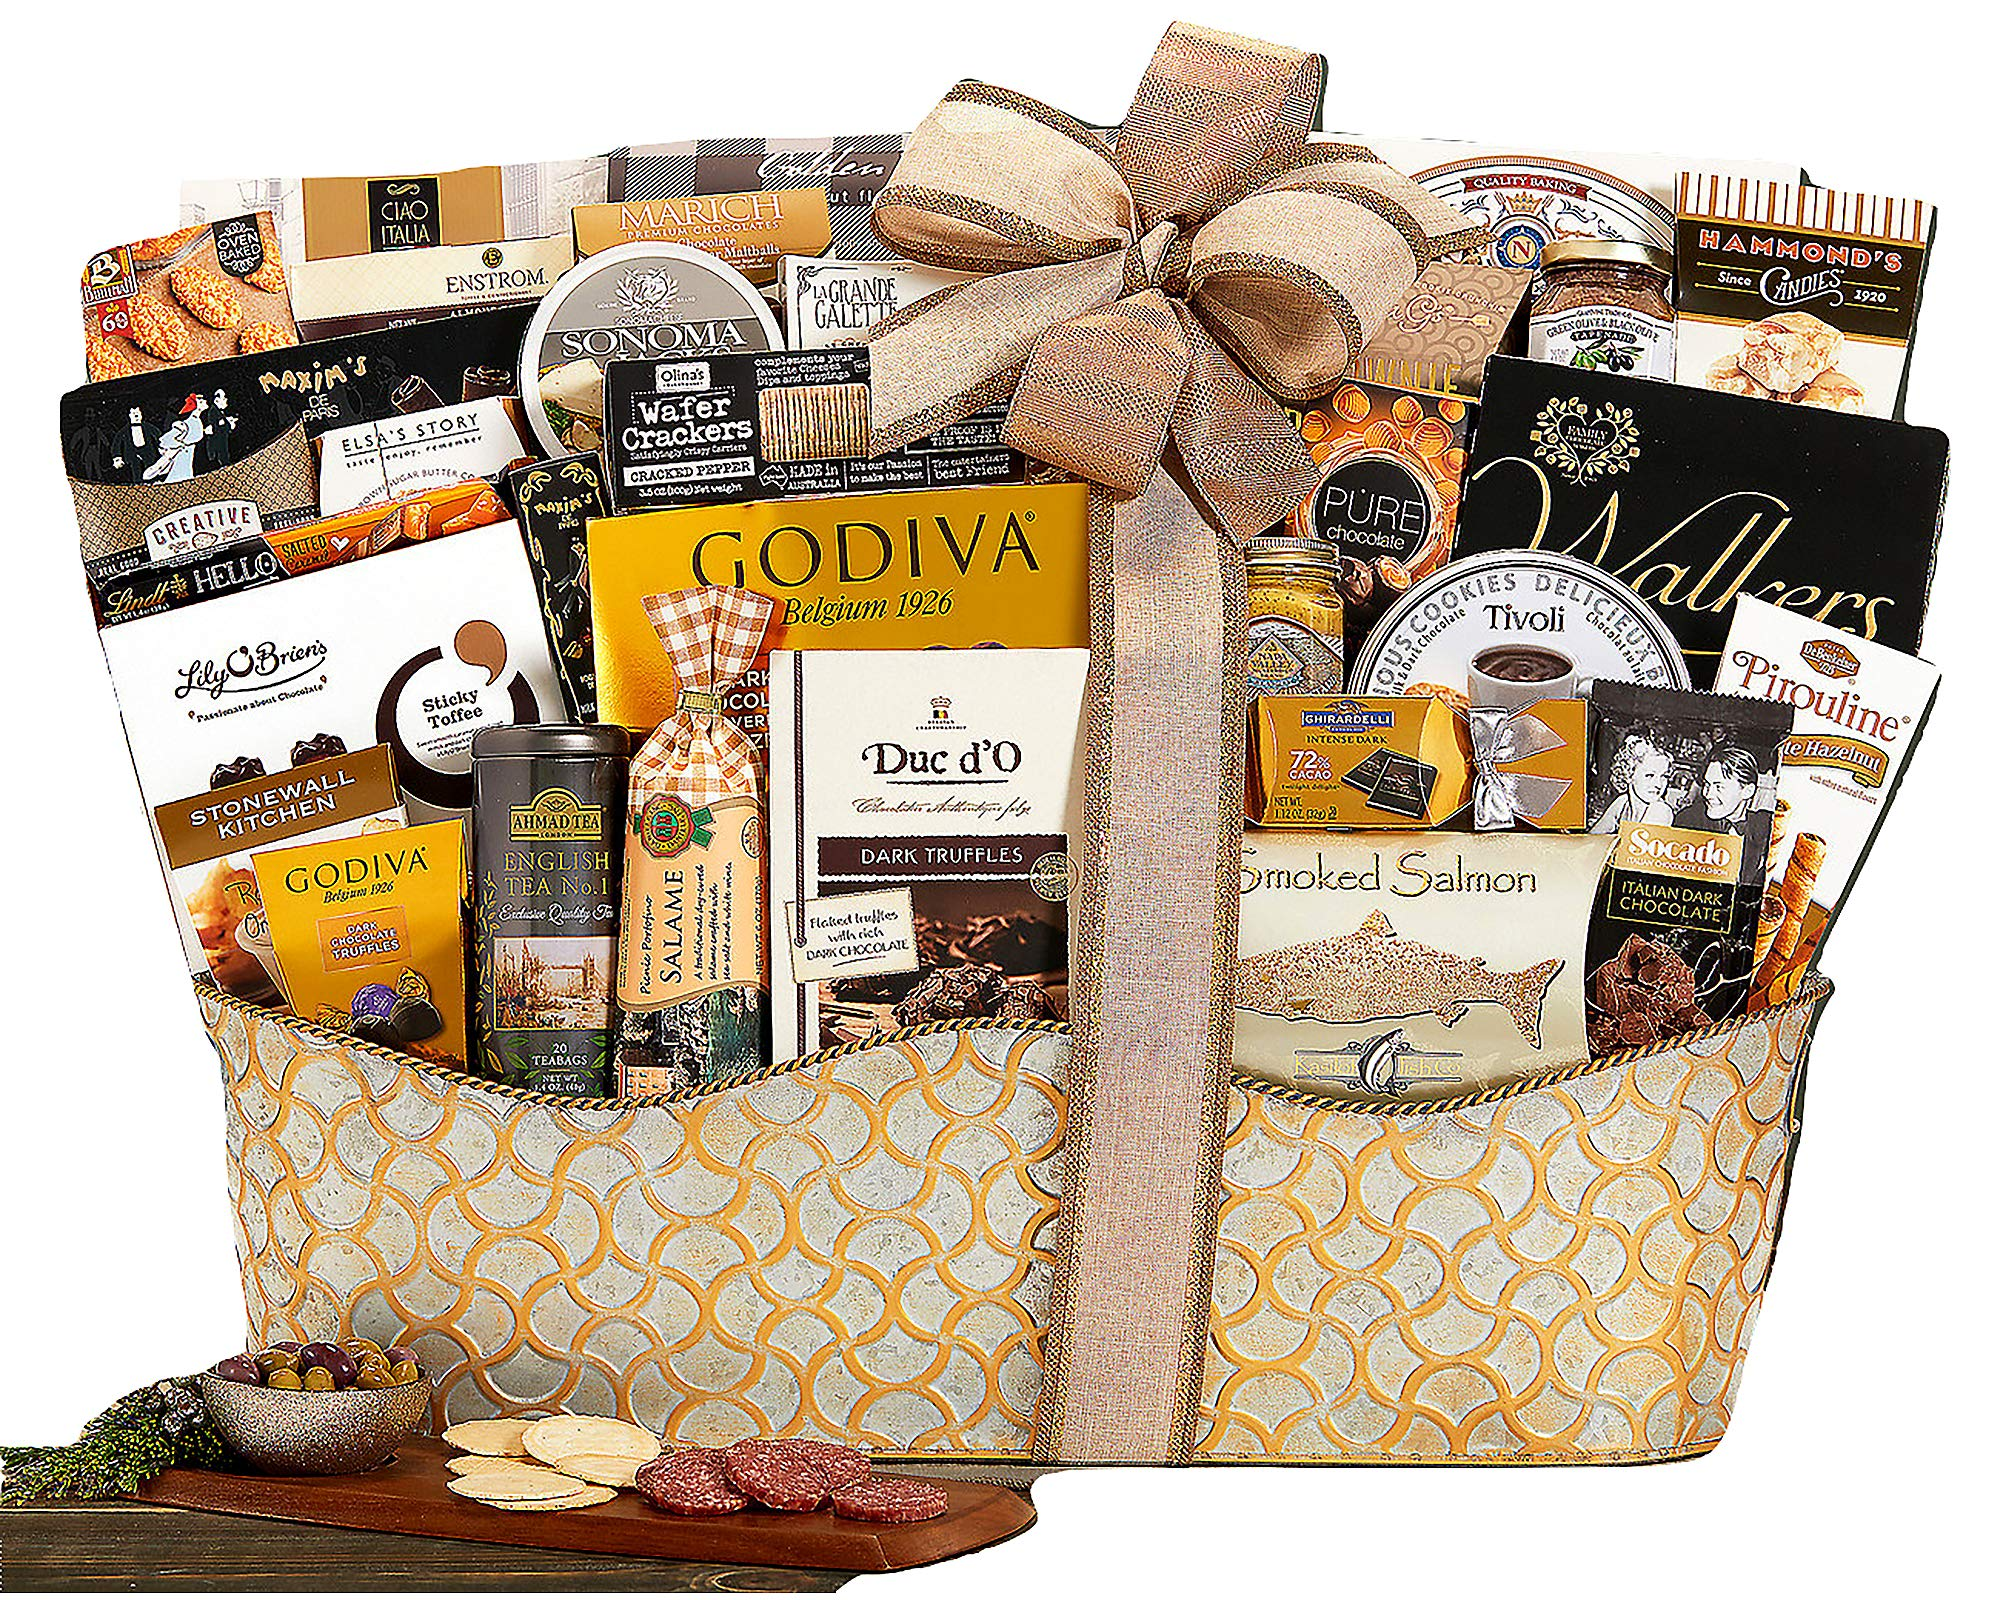 The V.I.P. Gourmet Gift Basket The Ultimate Gifting Experience by Wine Country Gift Baskets. Show Your Appreciation With This Flawless Gift Idea by Wine Country Gift Baskets (Image #1)